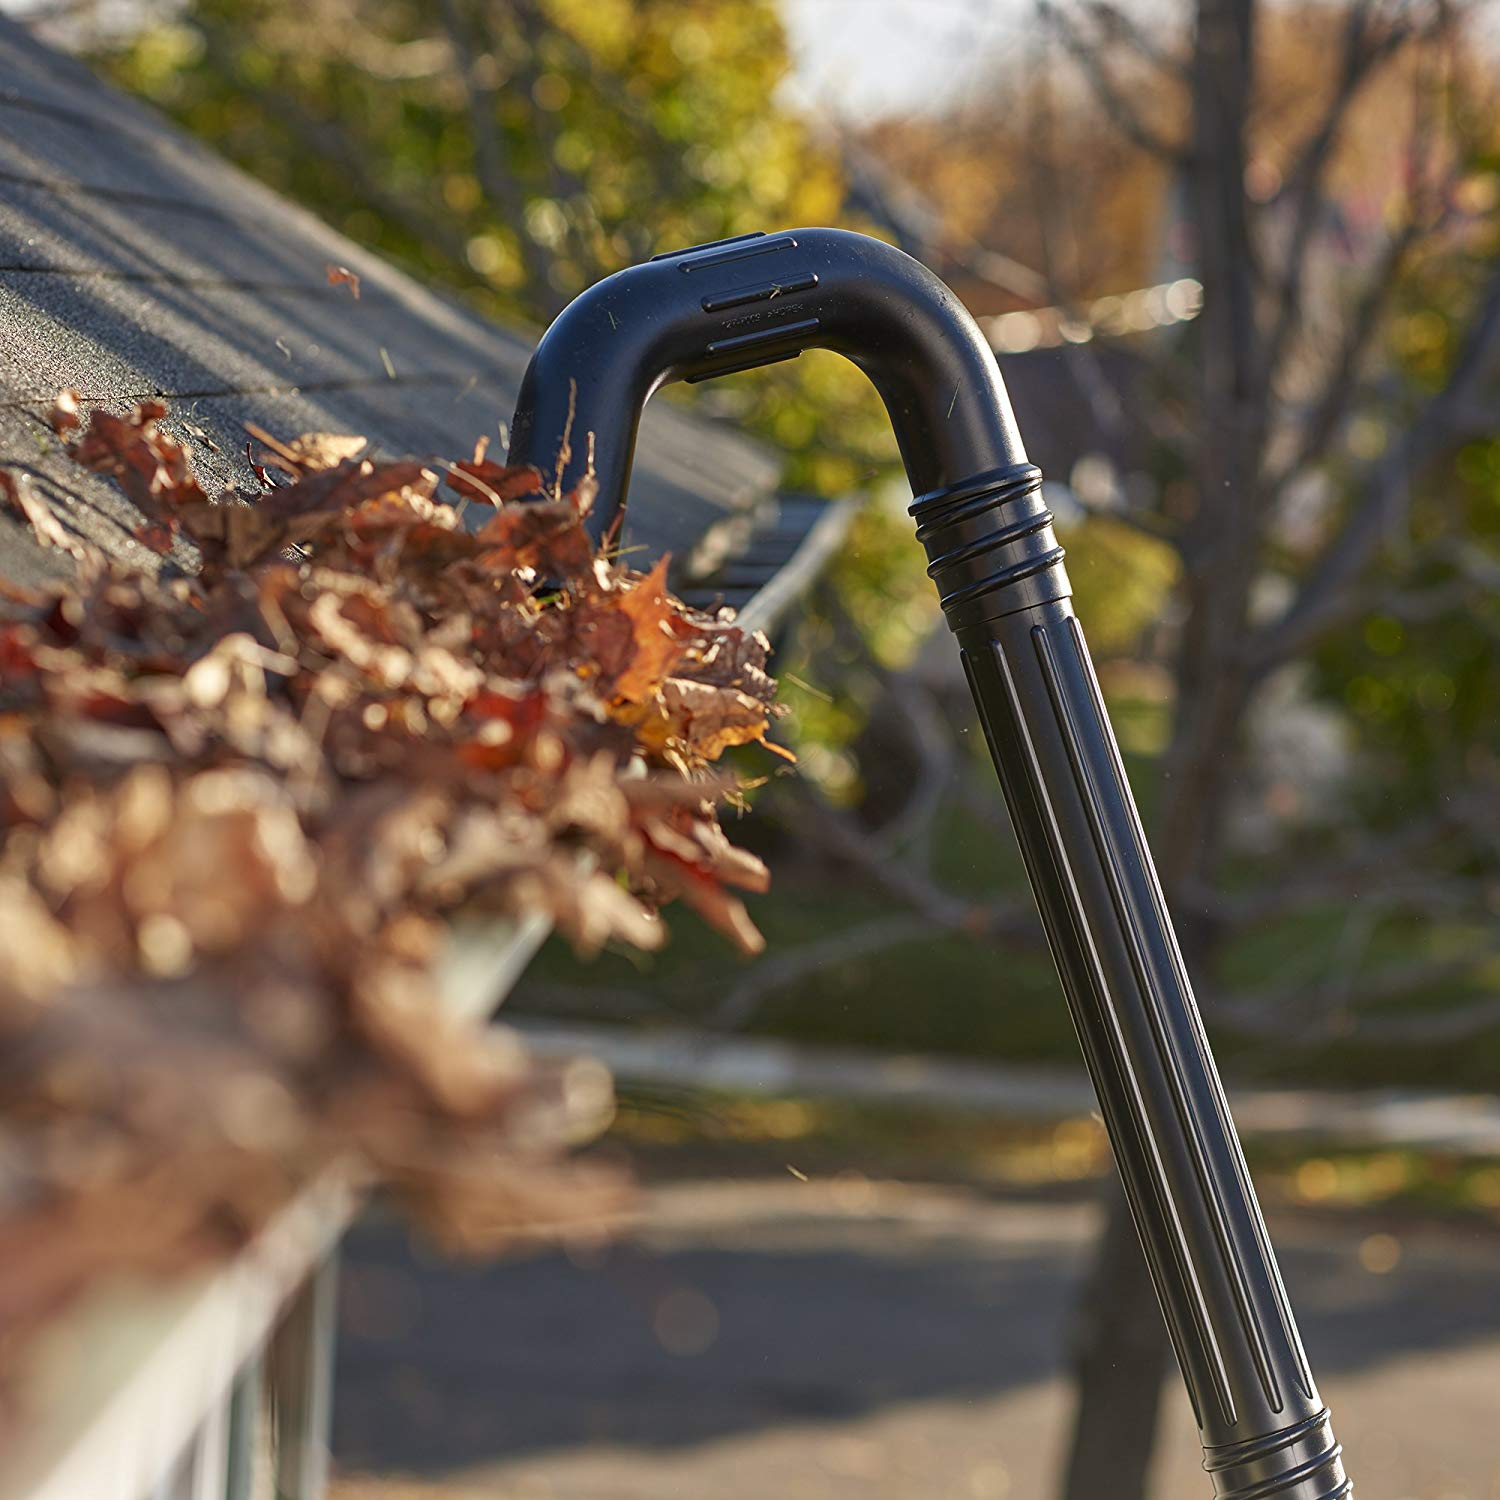 Gutter Cleaning Tools